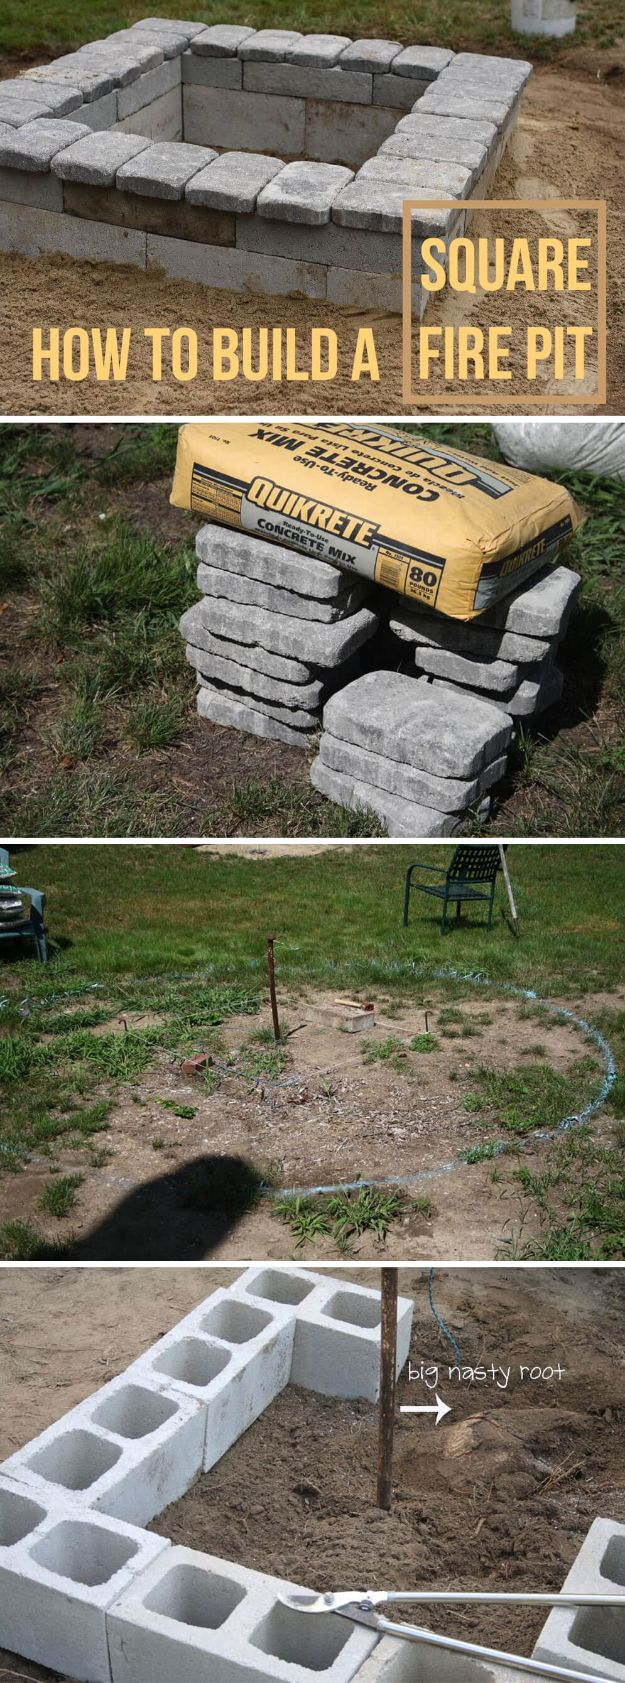 DIY Firepits - Square Concrete and Stone Firepit - Step by Step Tutorial for Raised Firepit , In Ground, Portable, Brick, Stone, Metal and Cinder Block Outdoor Fireplace #outdoors #diy